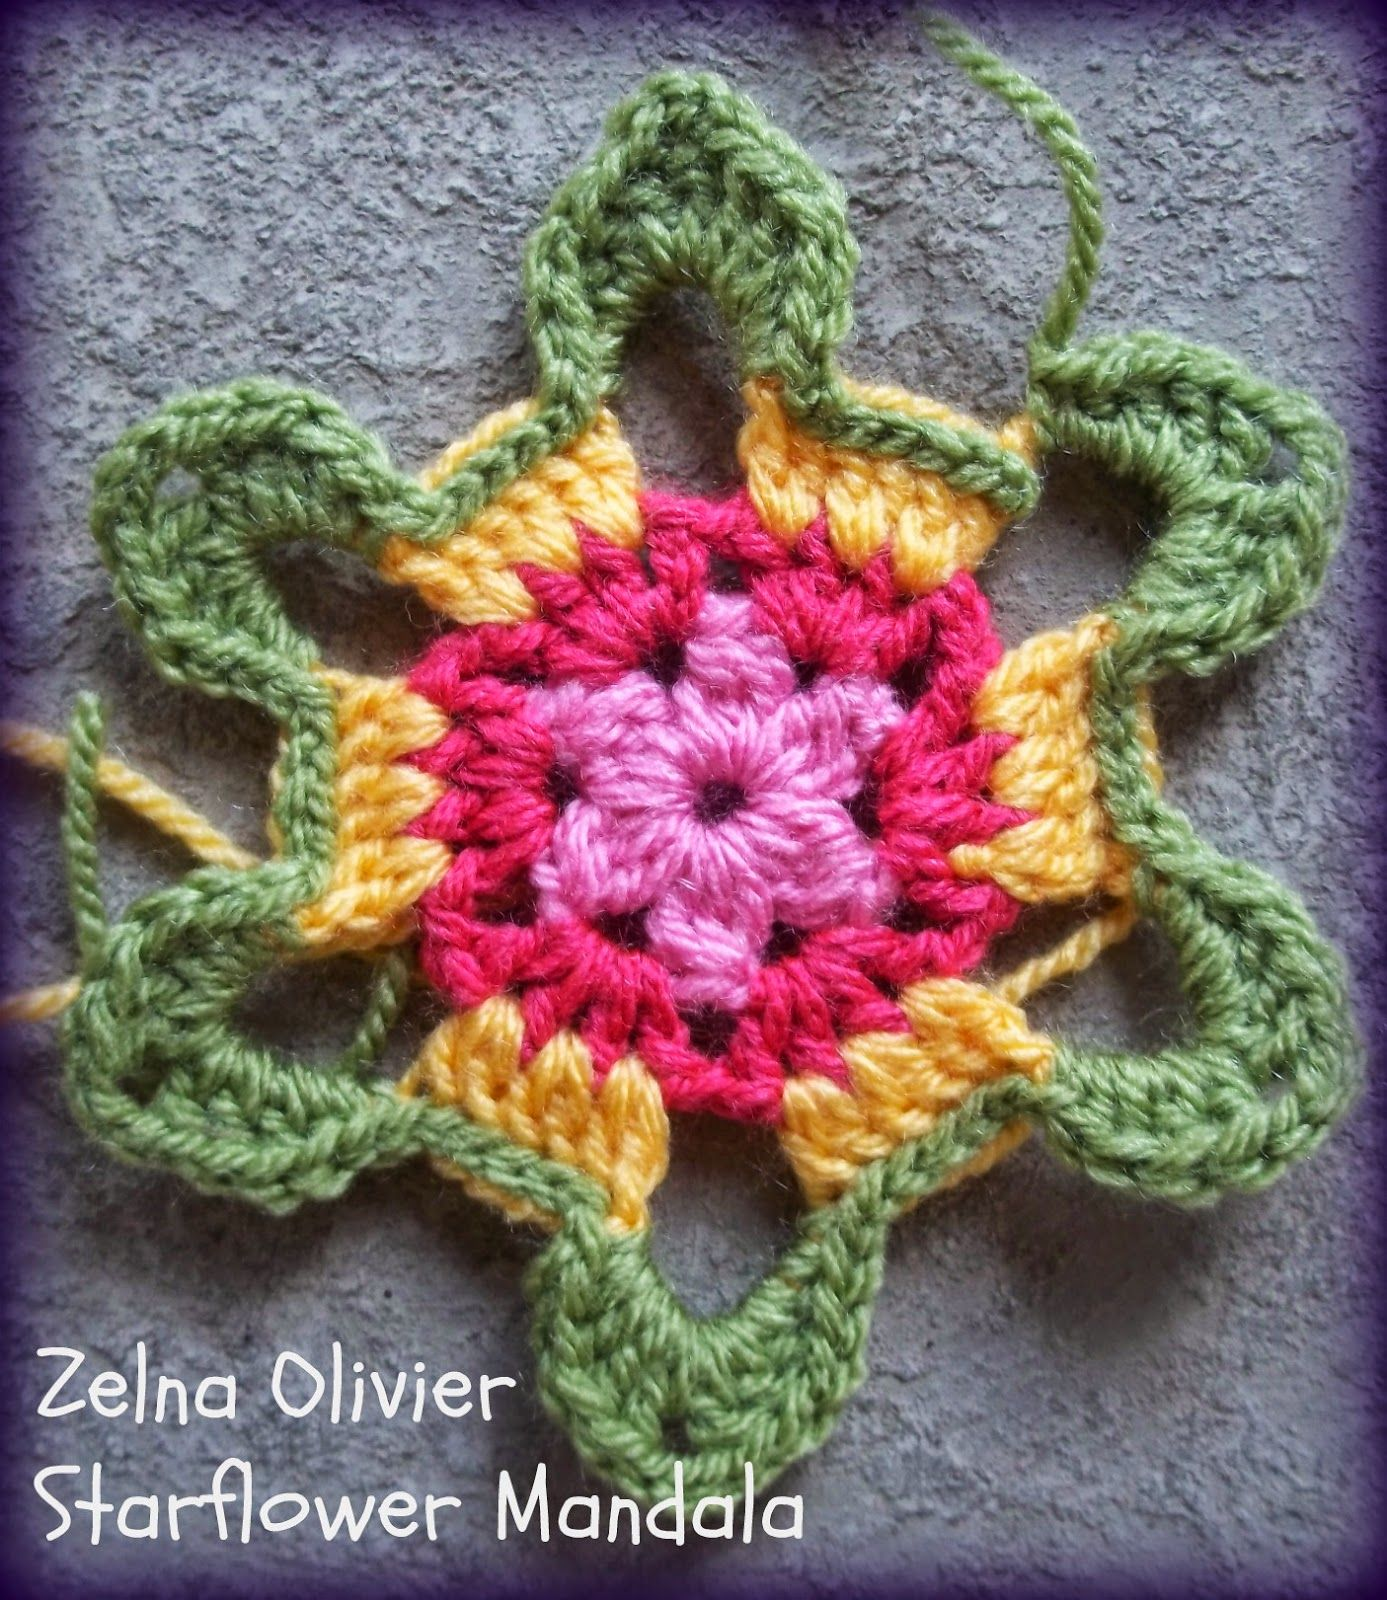 and here is the crochet pattern for the Starflower Mandala